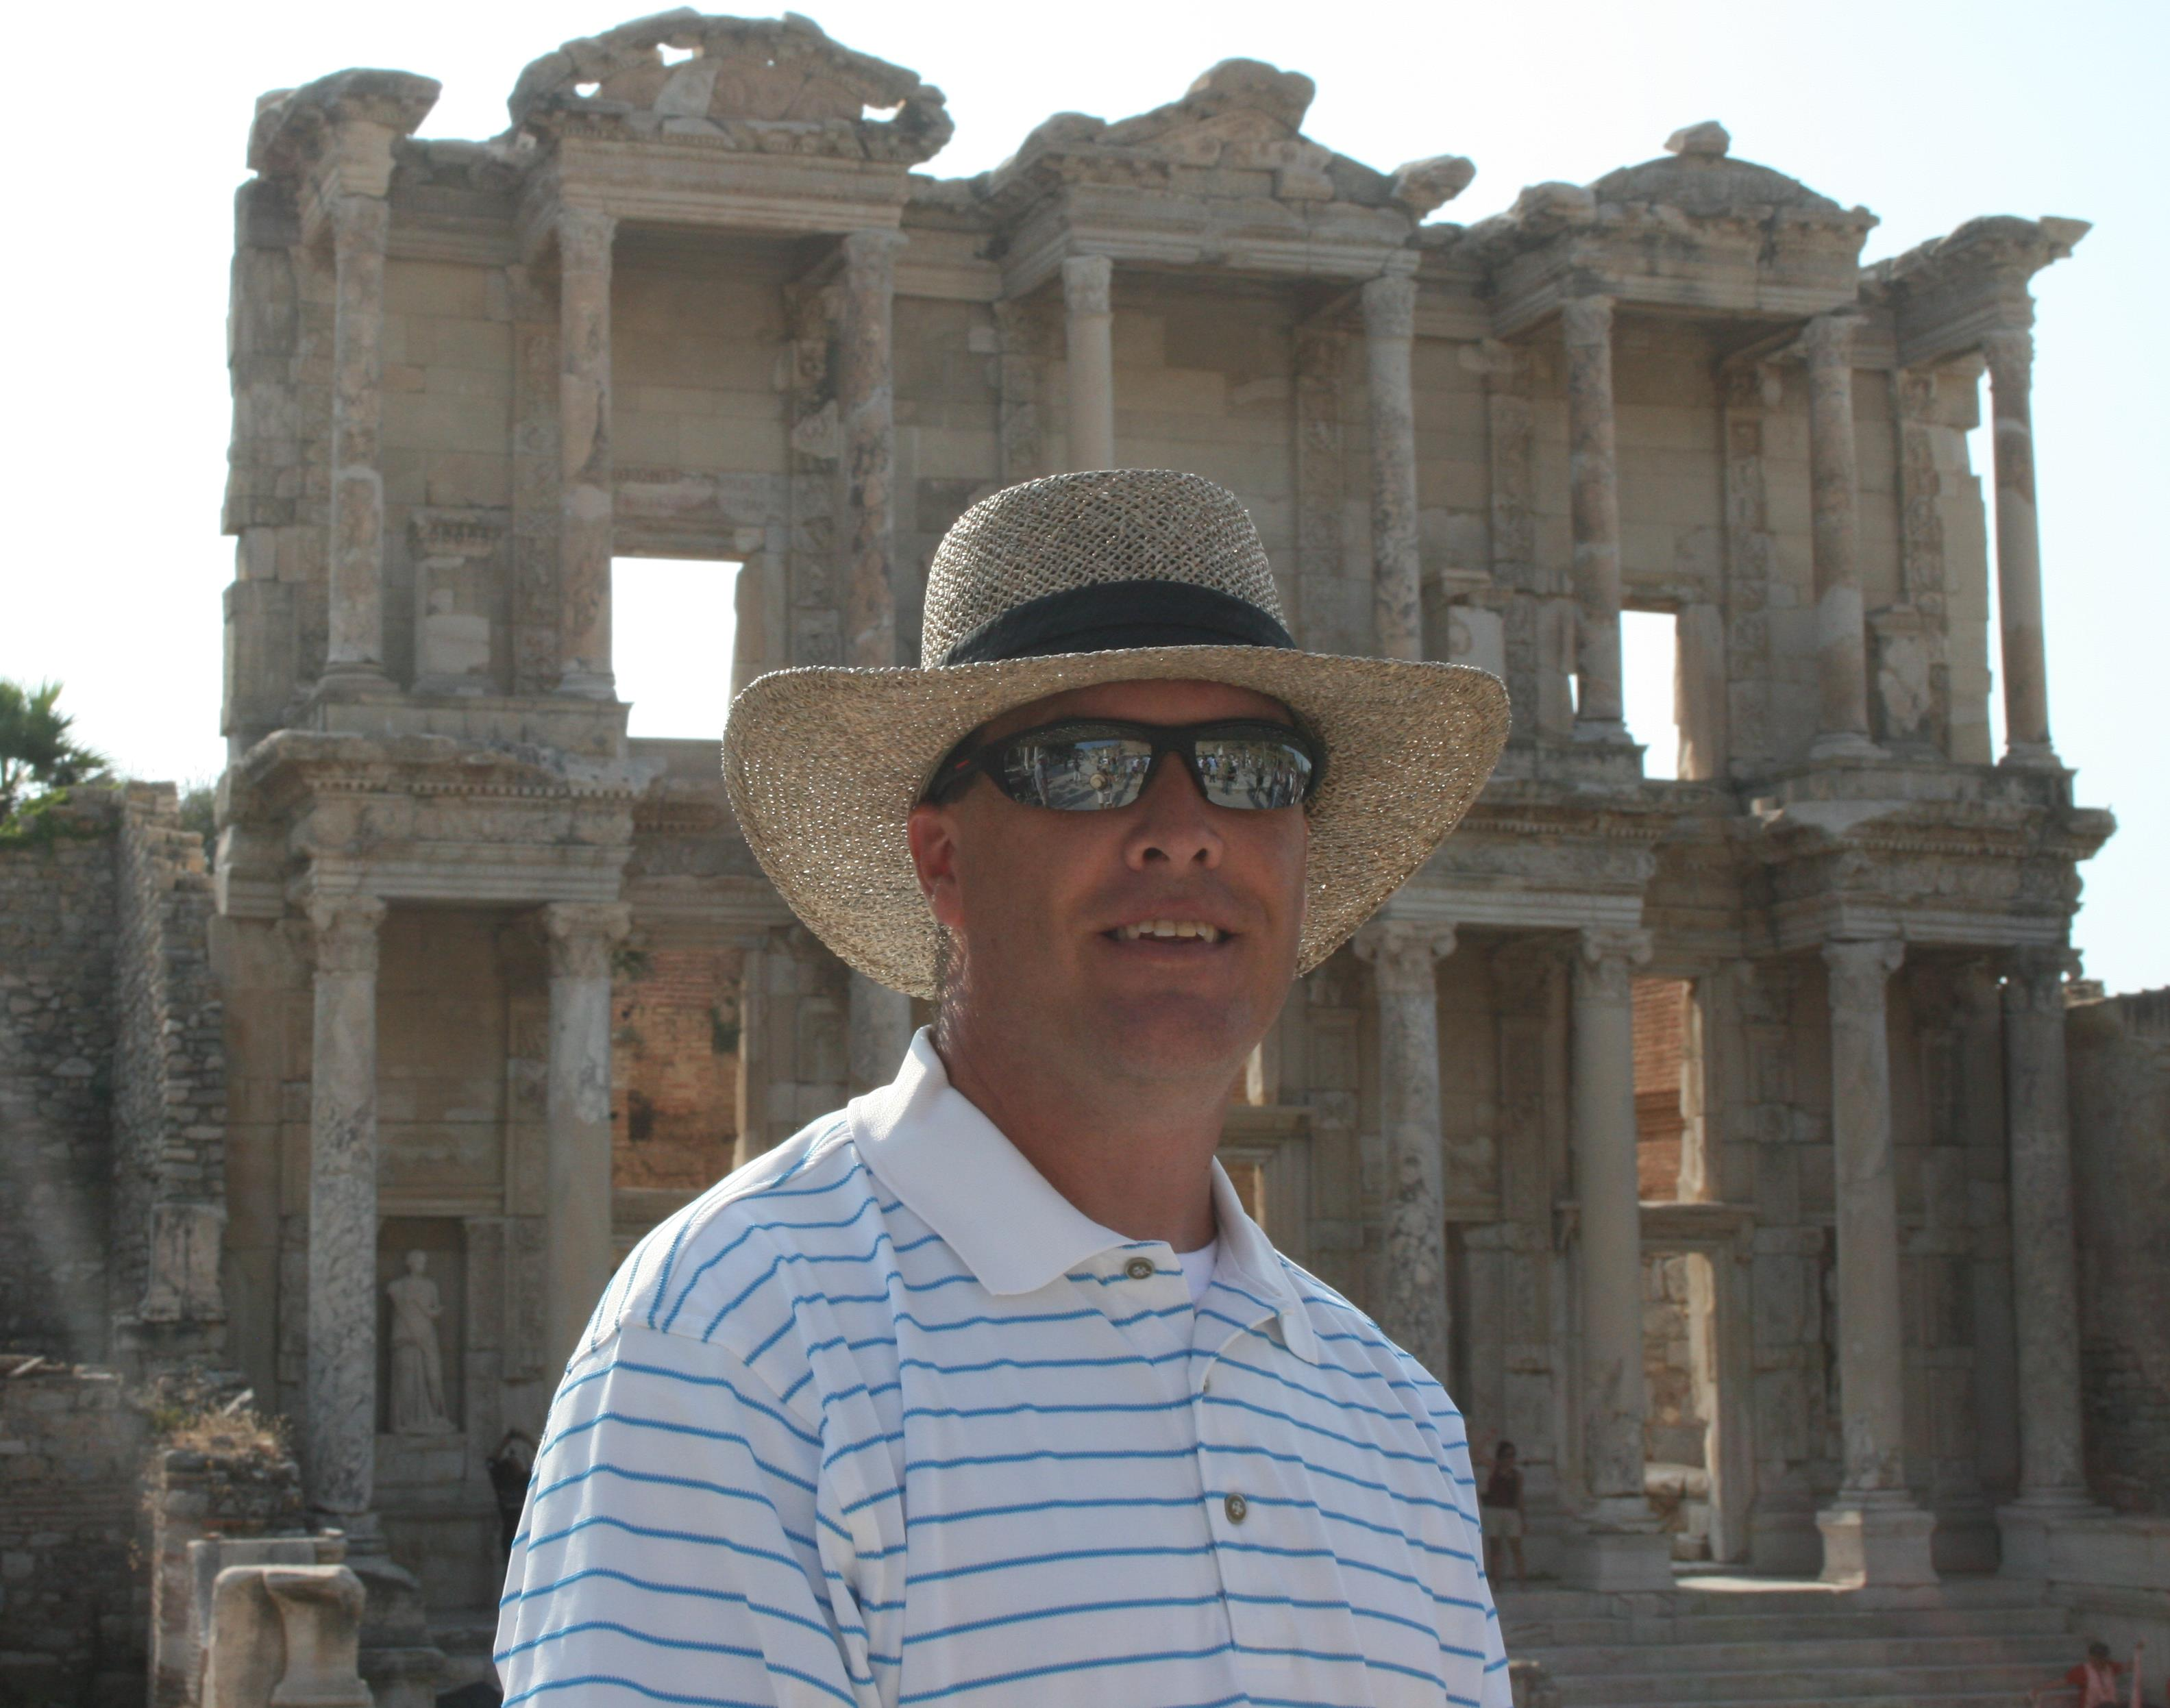 Mr. Smith at Library of Ephesus